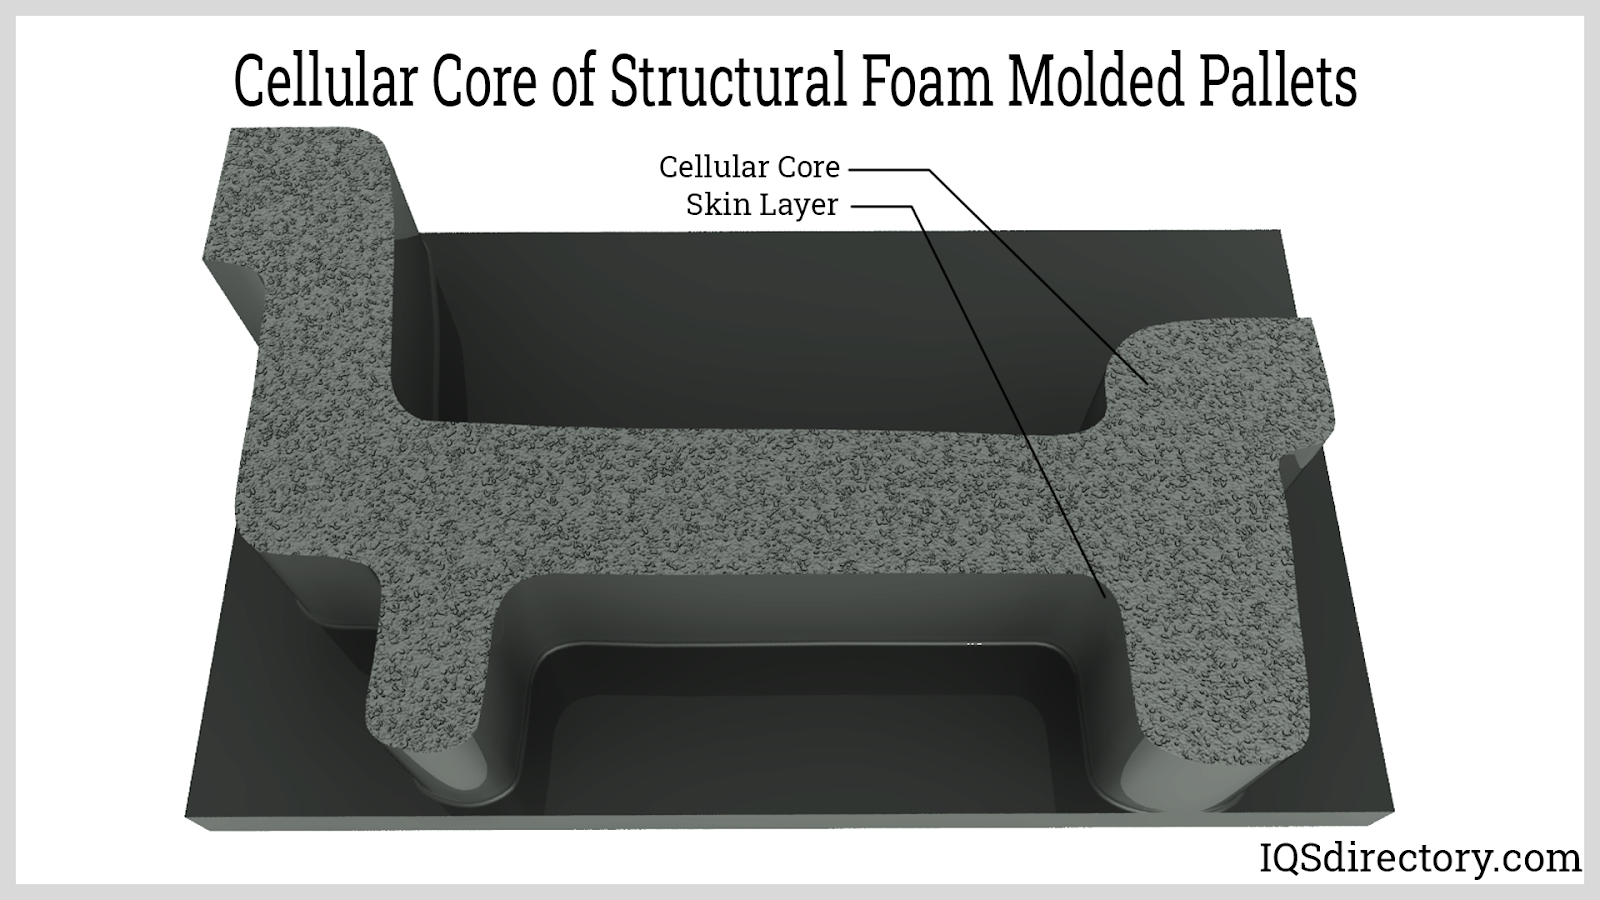 Cellular Core of Structural Foam Molded Pallets